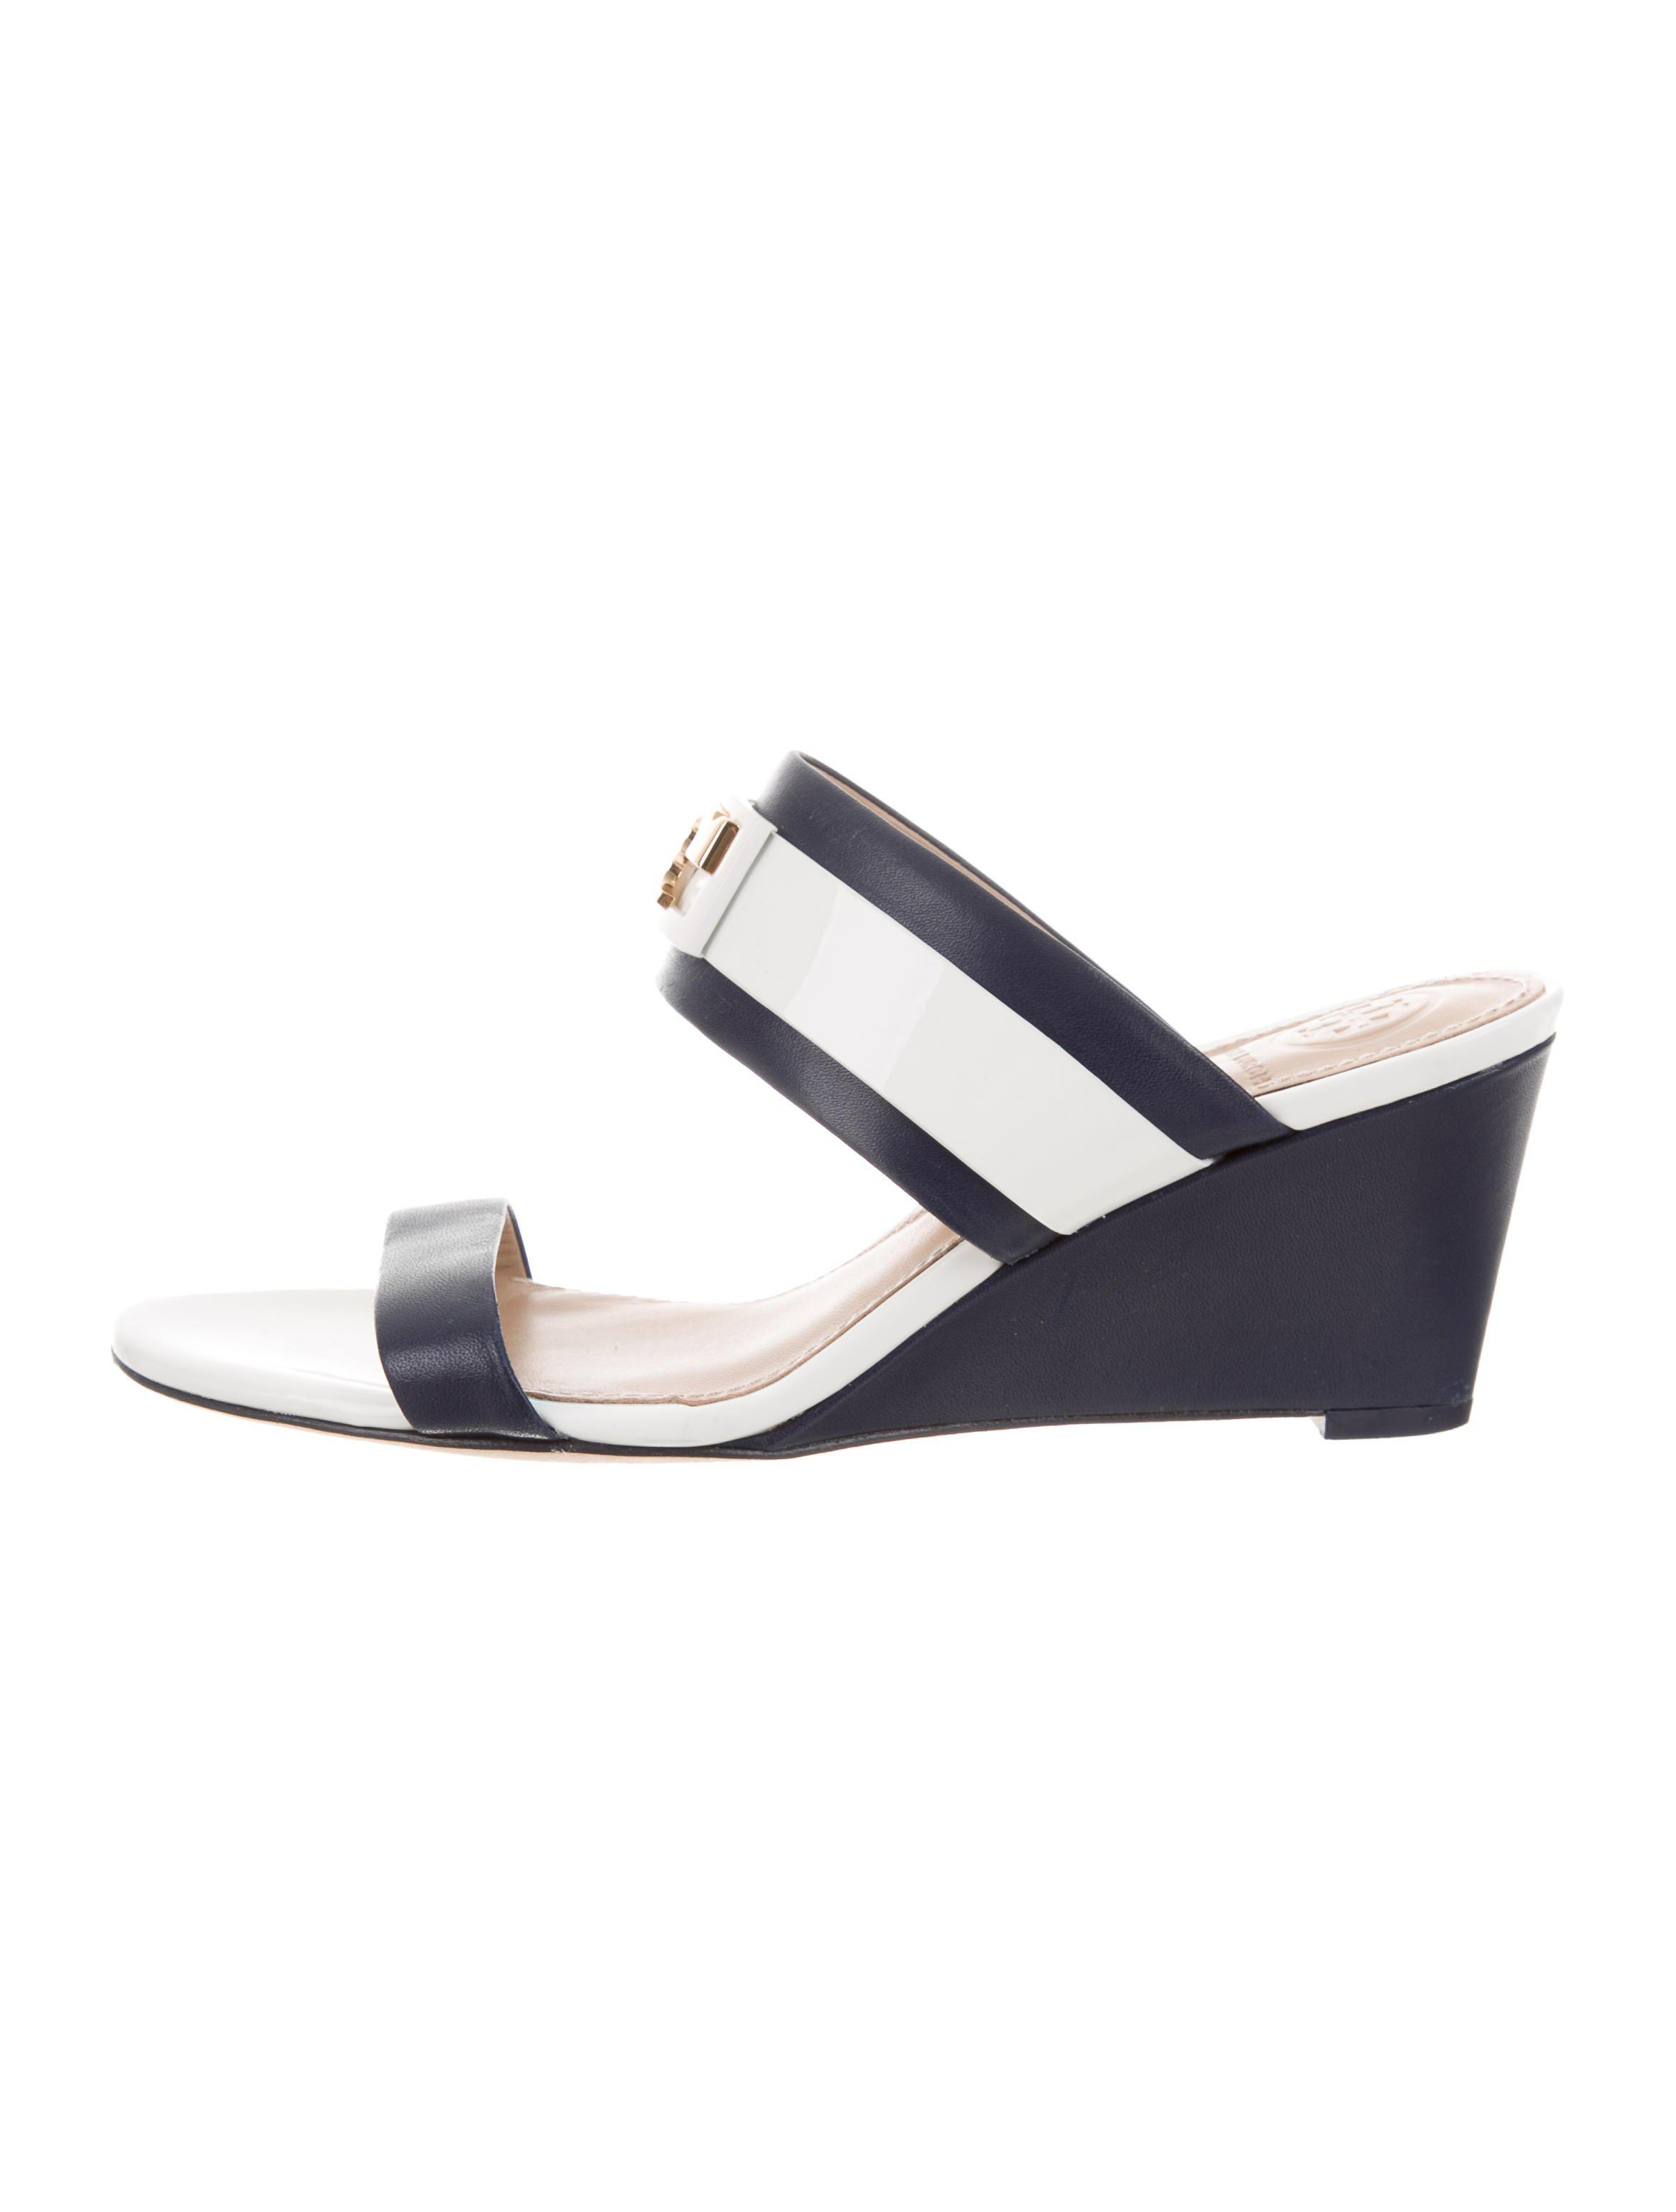 e7f1e9812 Lyst - Tory Burch Leather Wedge Mules Navy in Metallic